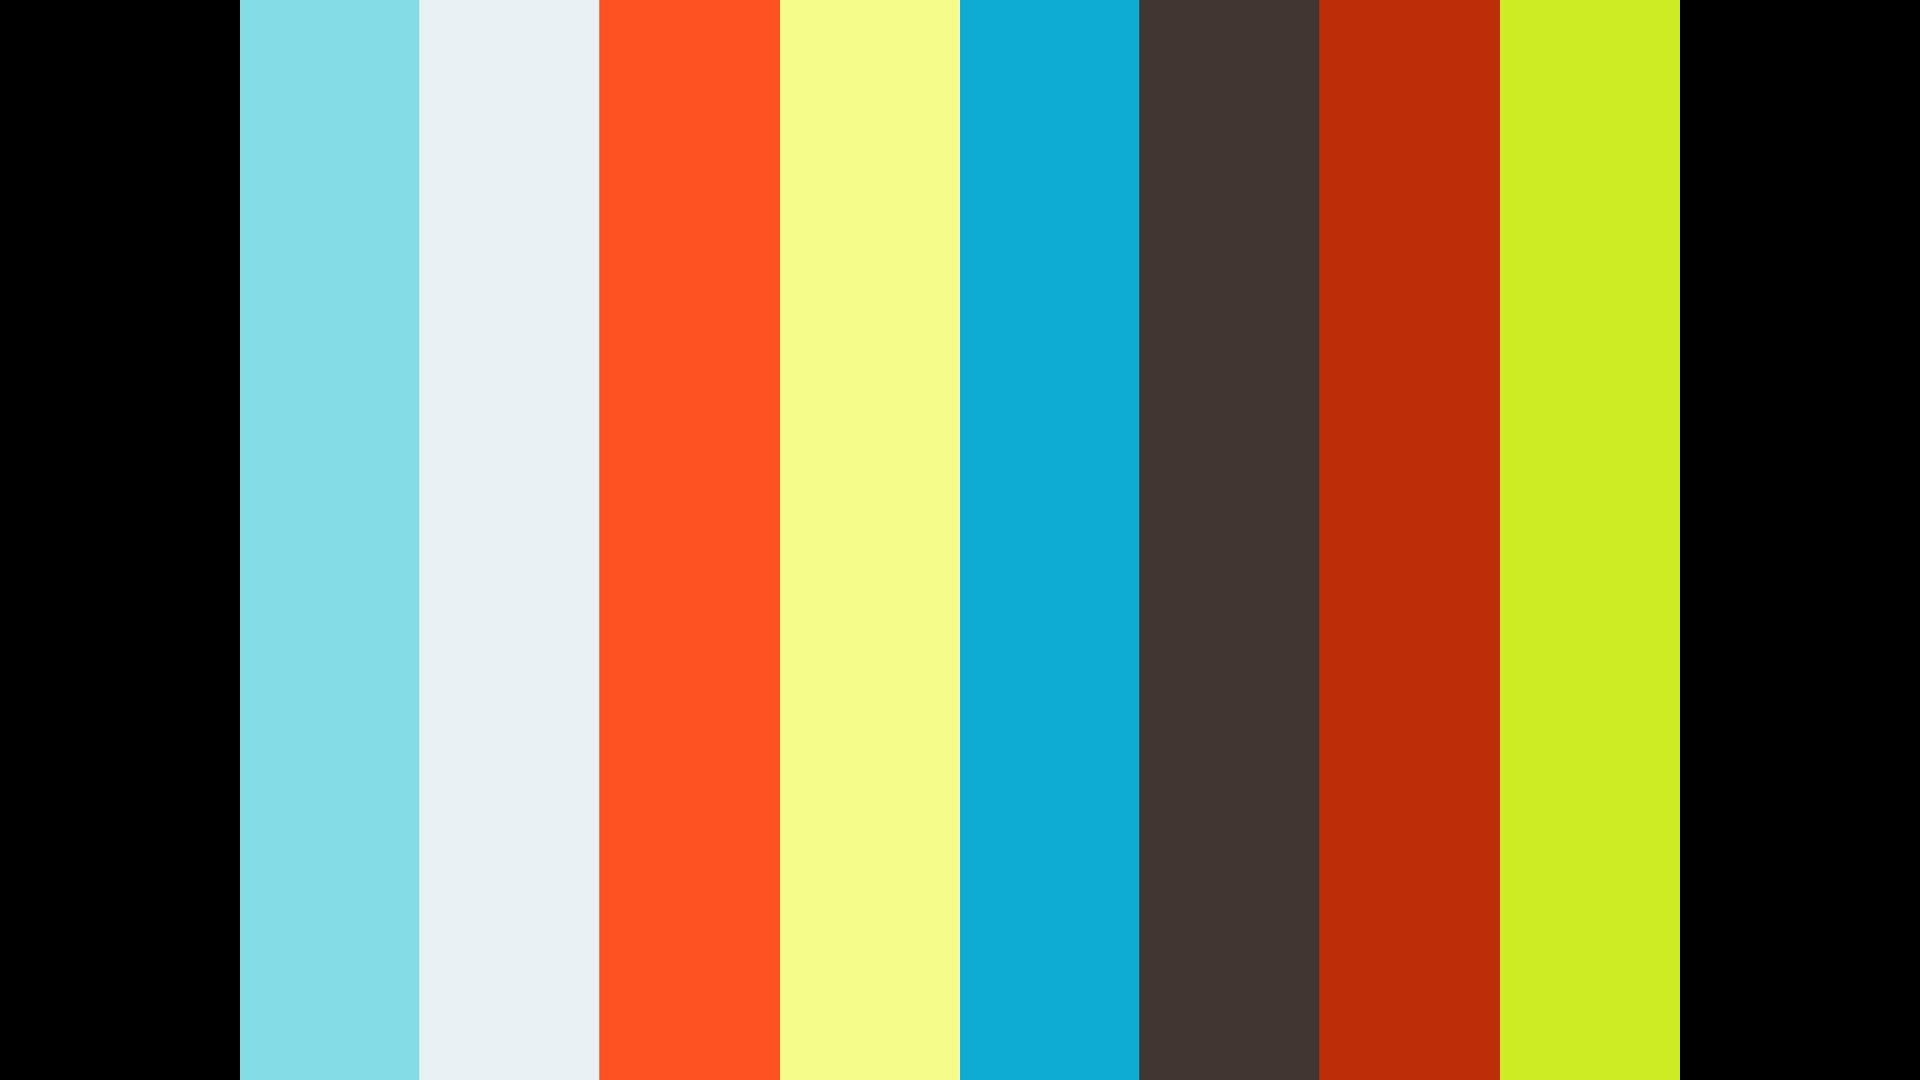 The Rhonda Jarvis Project